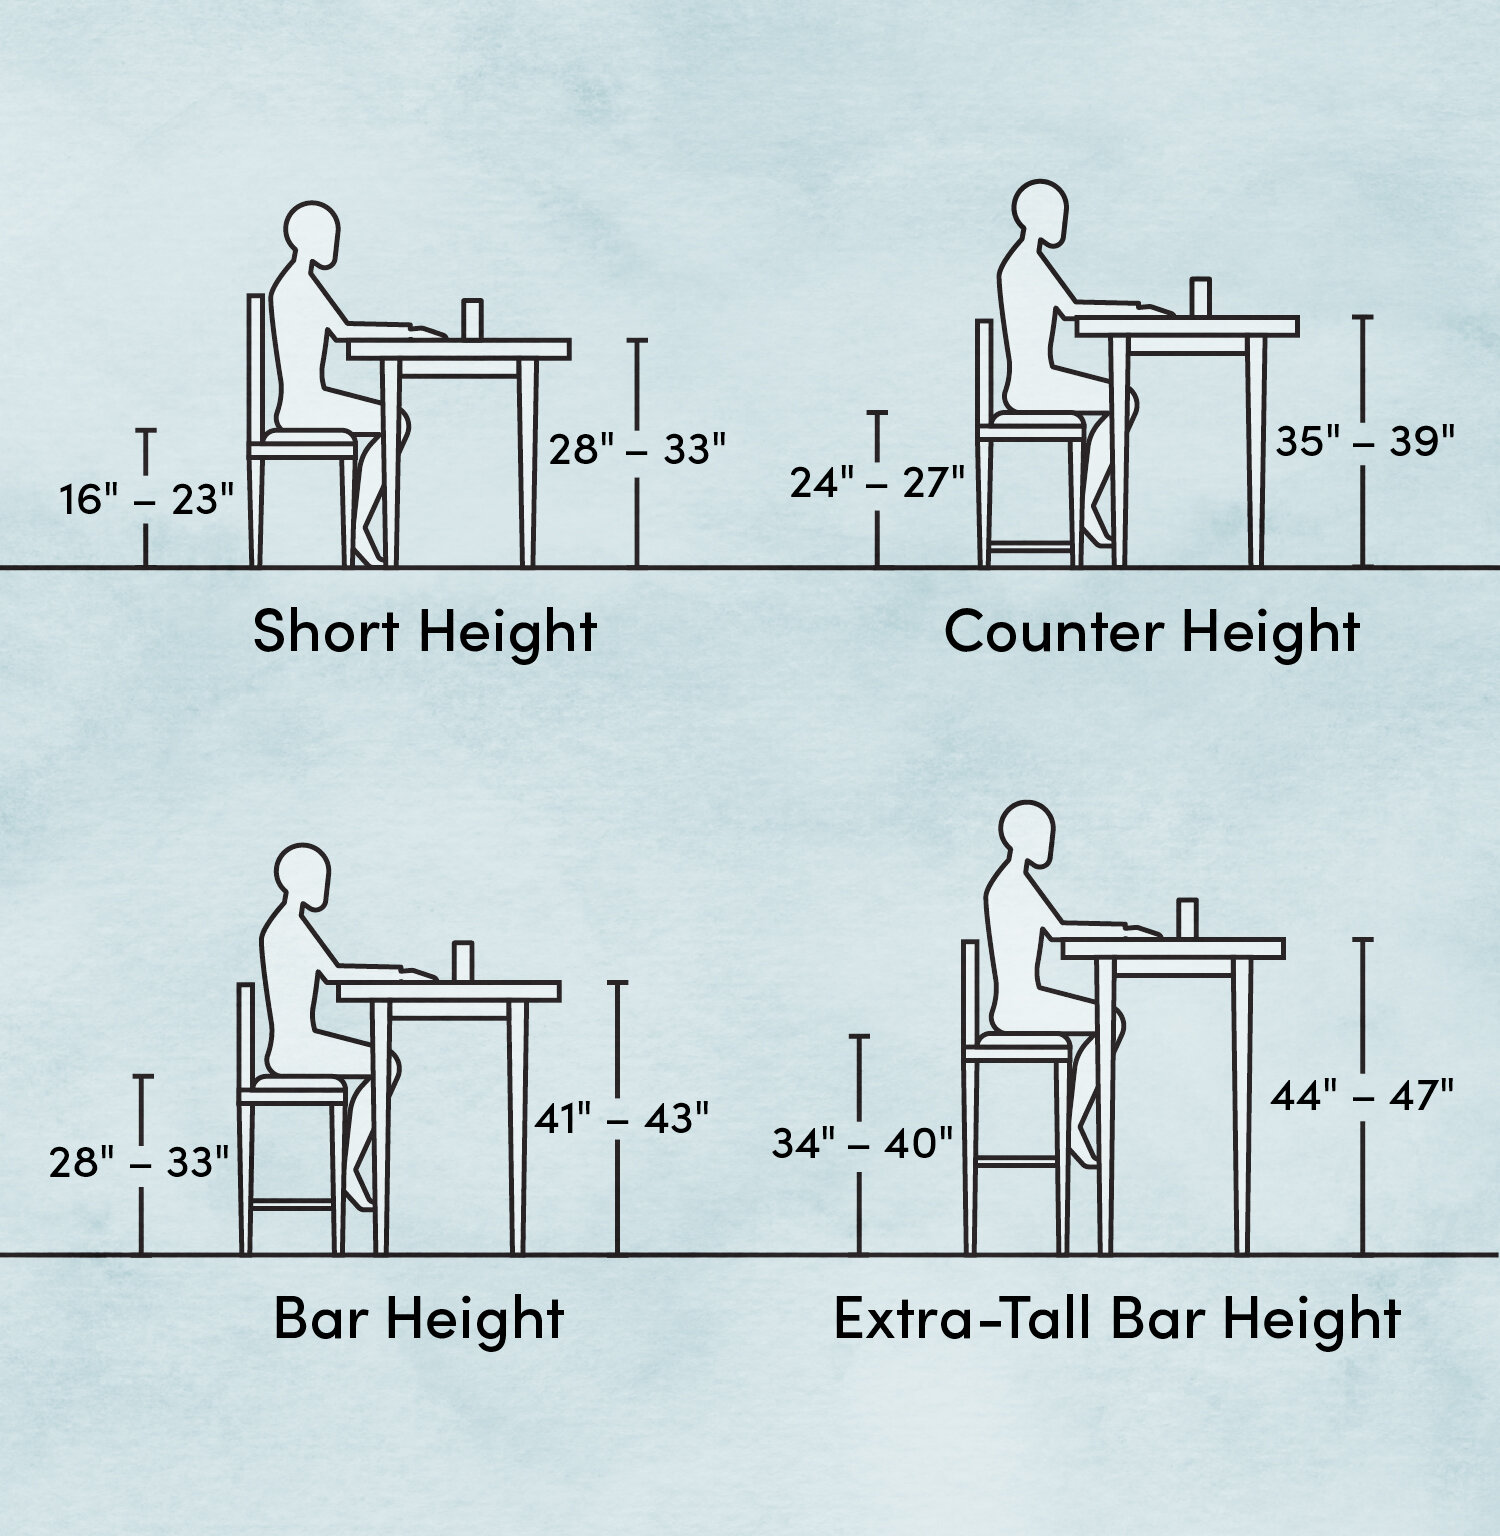 Bar Stool Dimensions: How to Choose the Right Ones  Wayfair